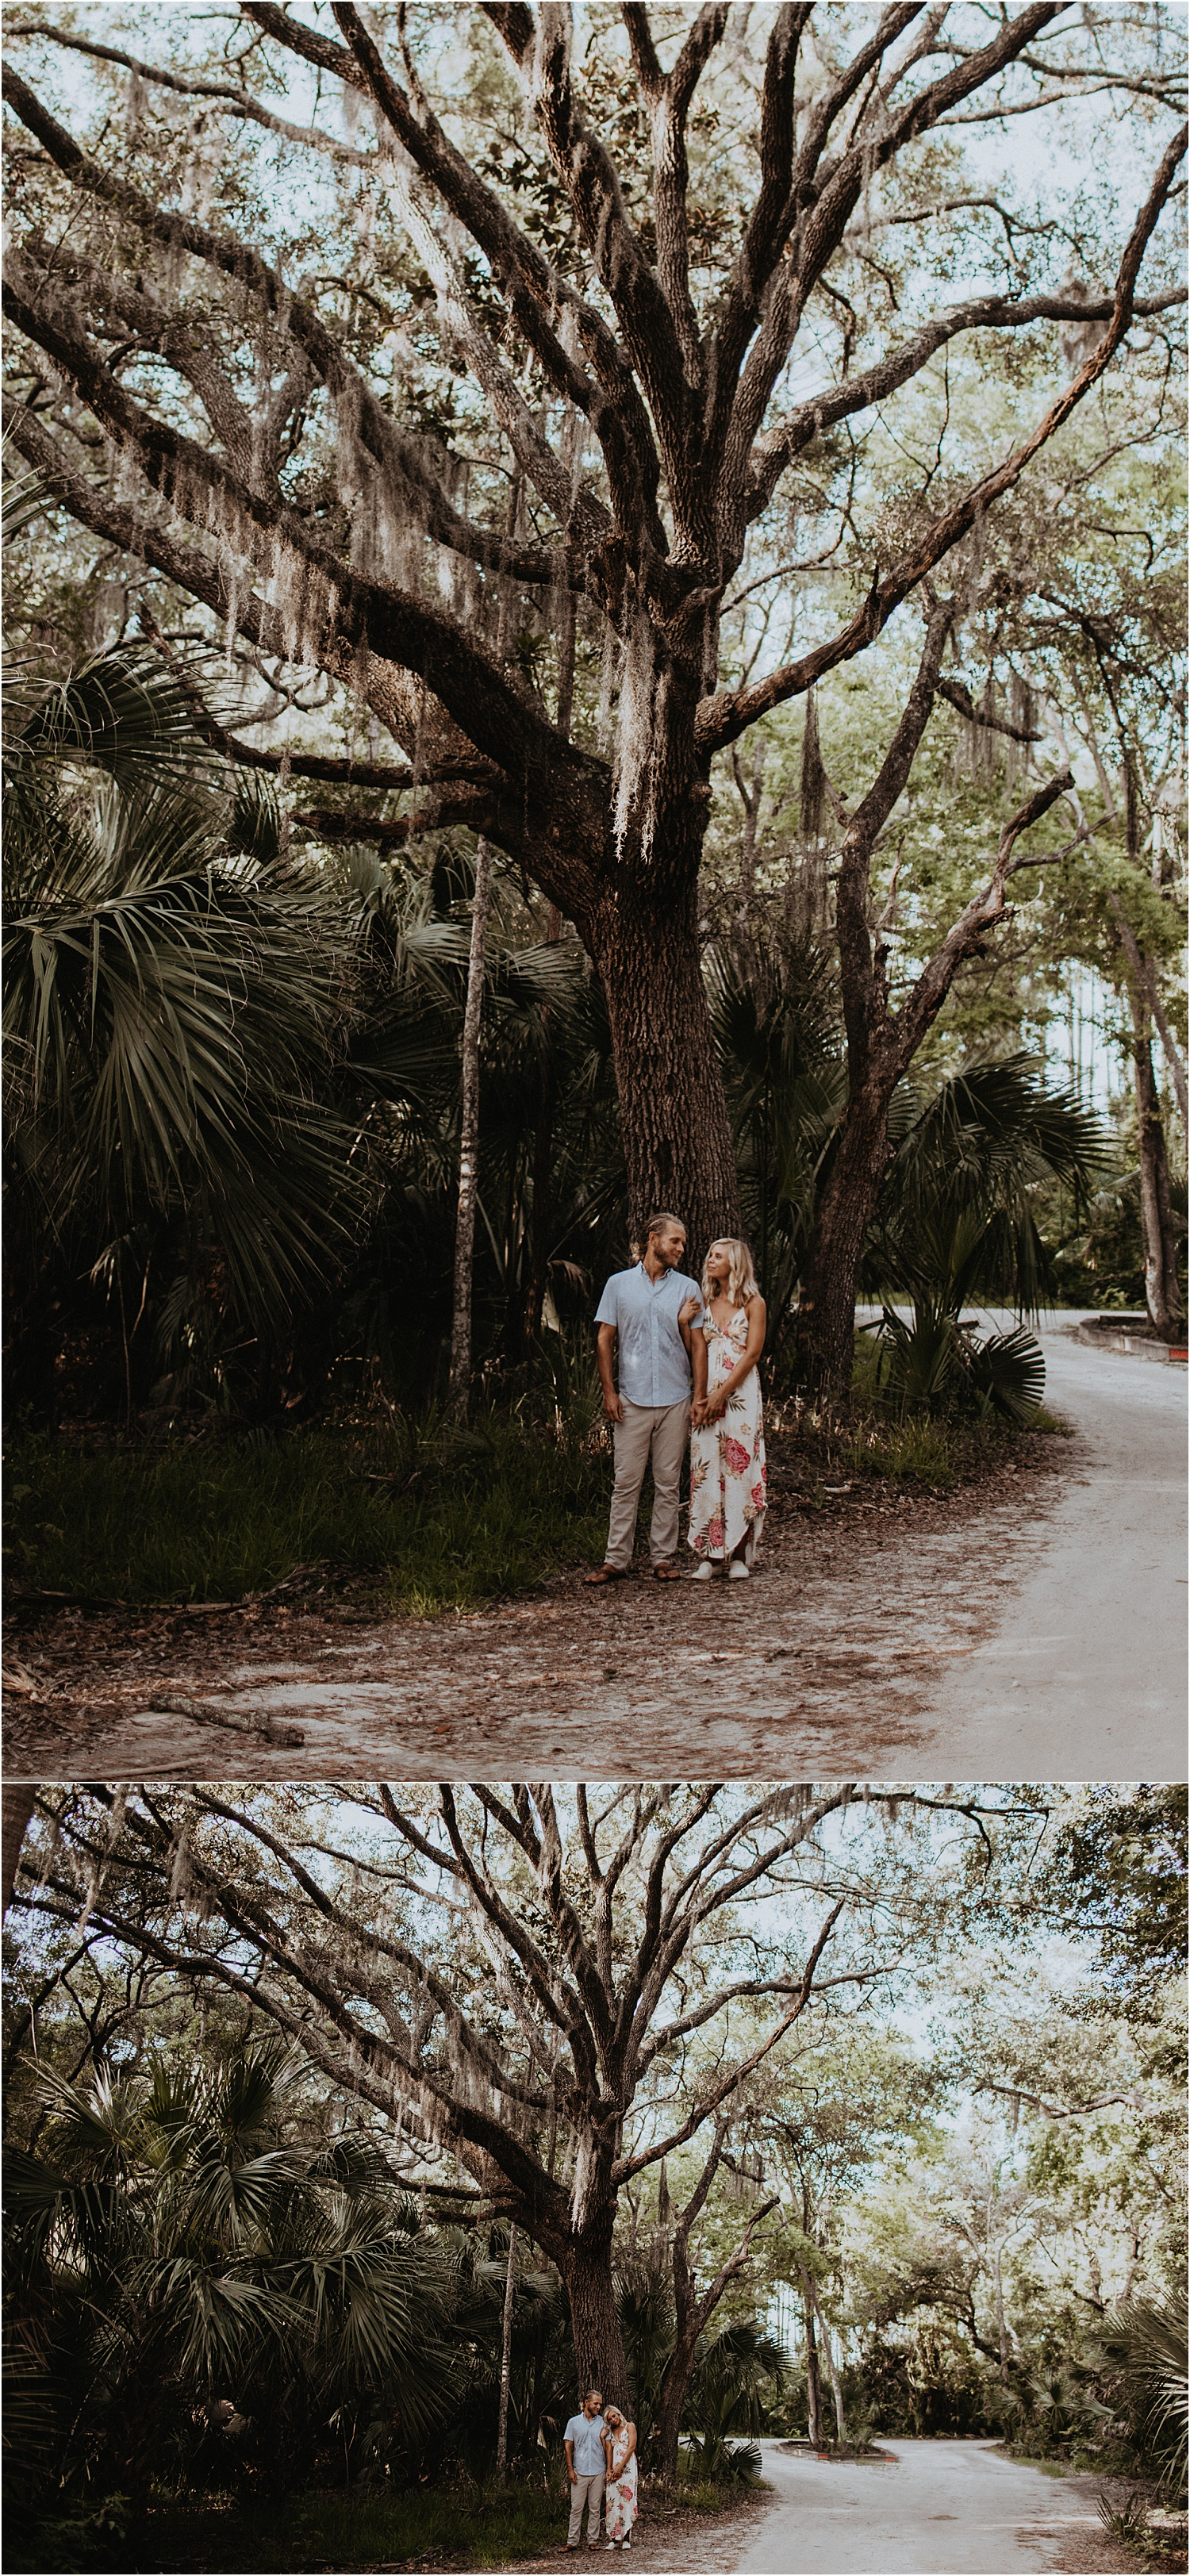 dutton-island-preserve-engagement-session-jacksonville-florida_0763.jpg